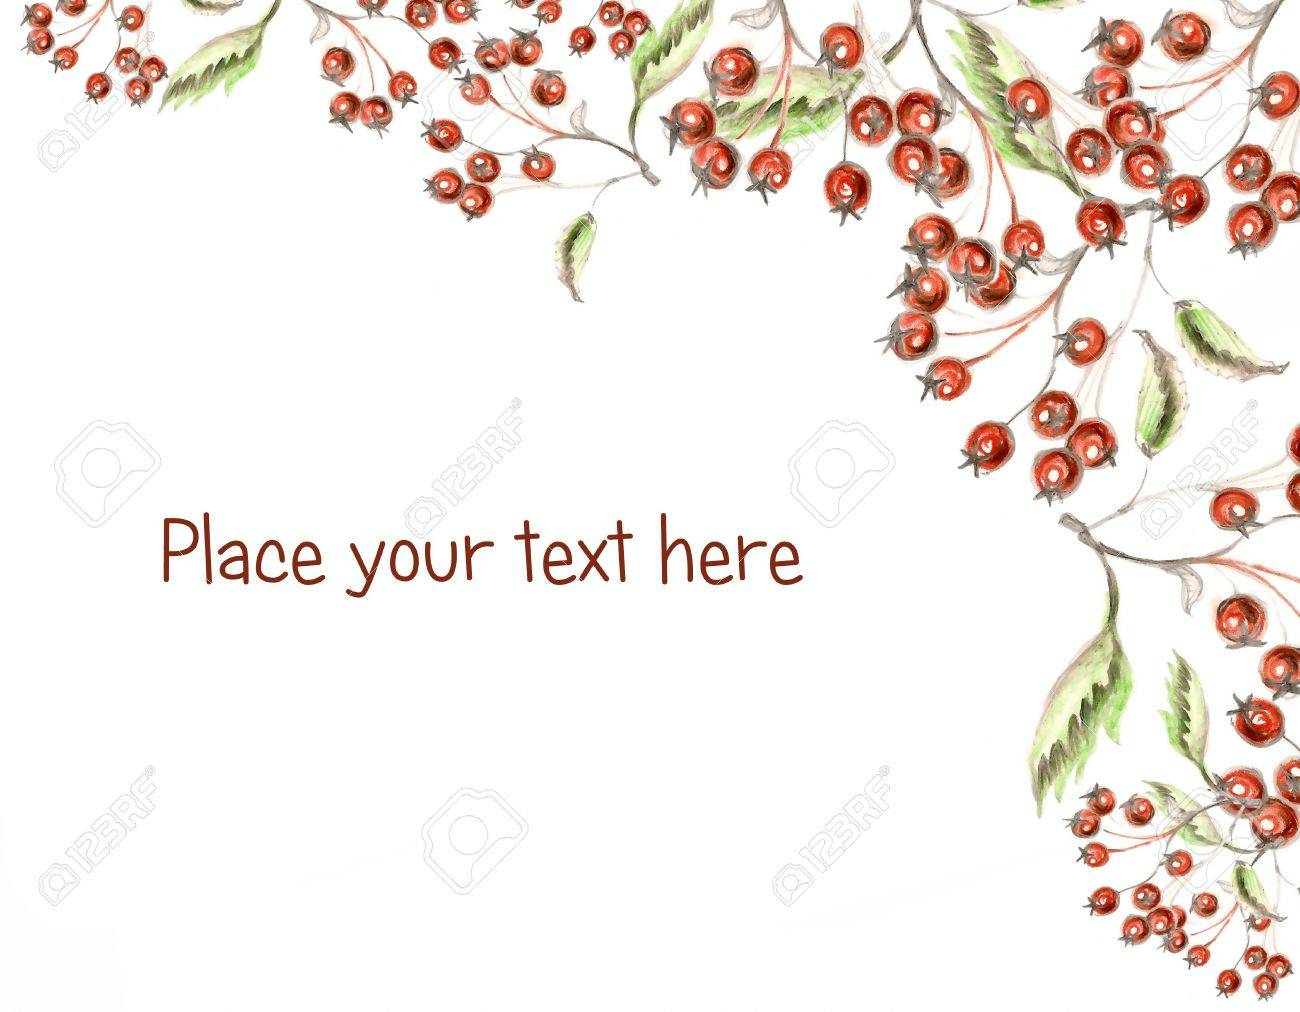 1300x1012 Red Berries Holly Hand Made Drawing With Space For Your Text Stock